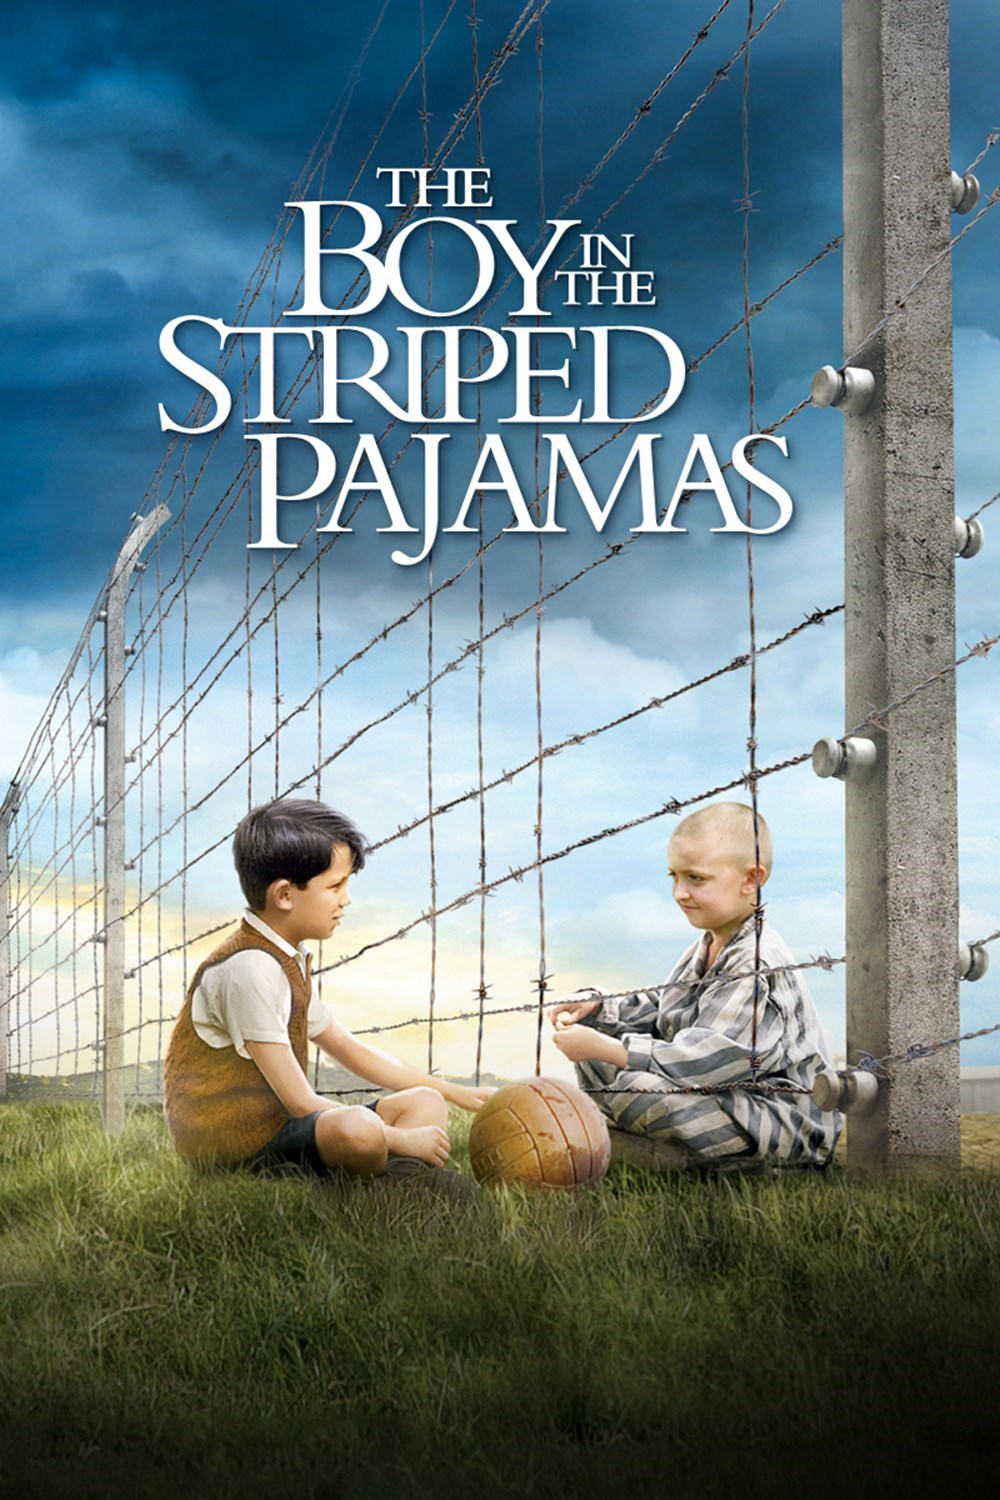 the-boy-in-the-striped-pyjamas-the-boy-in-the-striped-pajamas